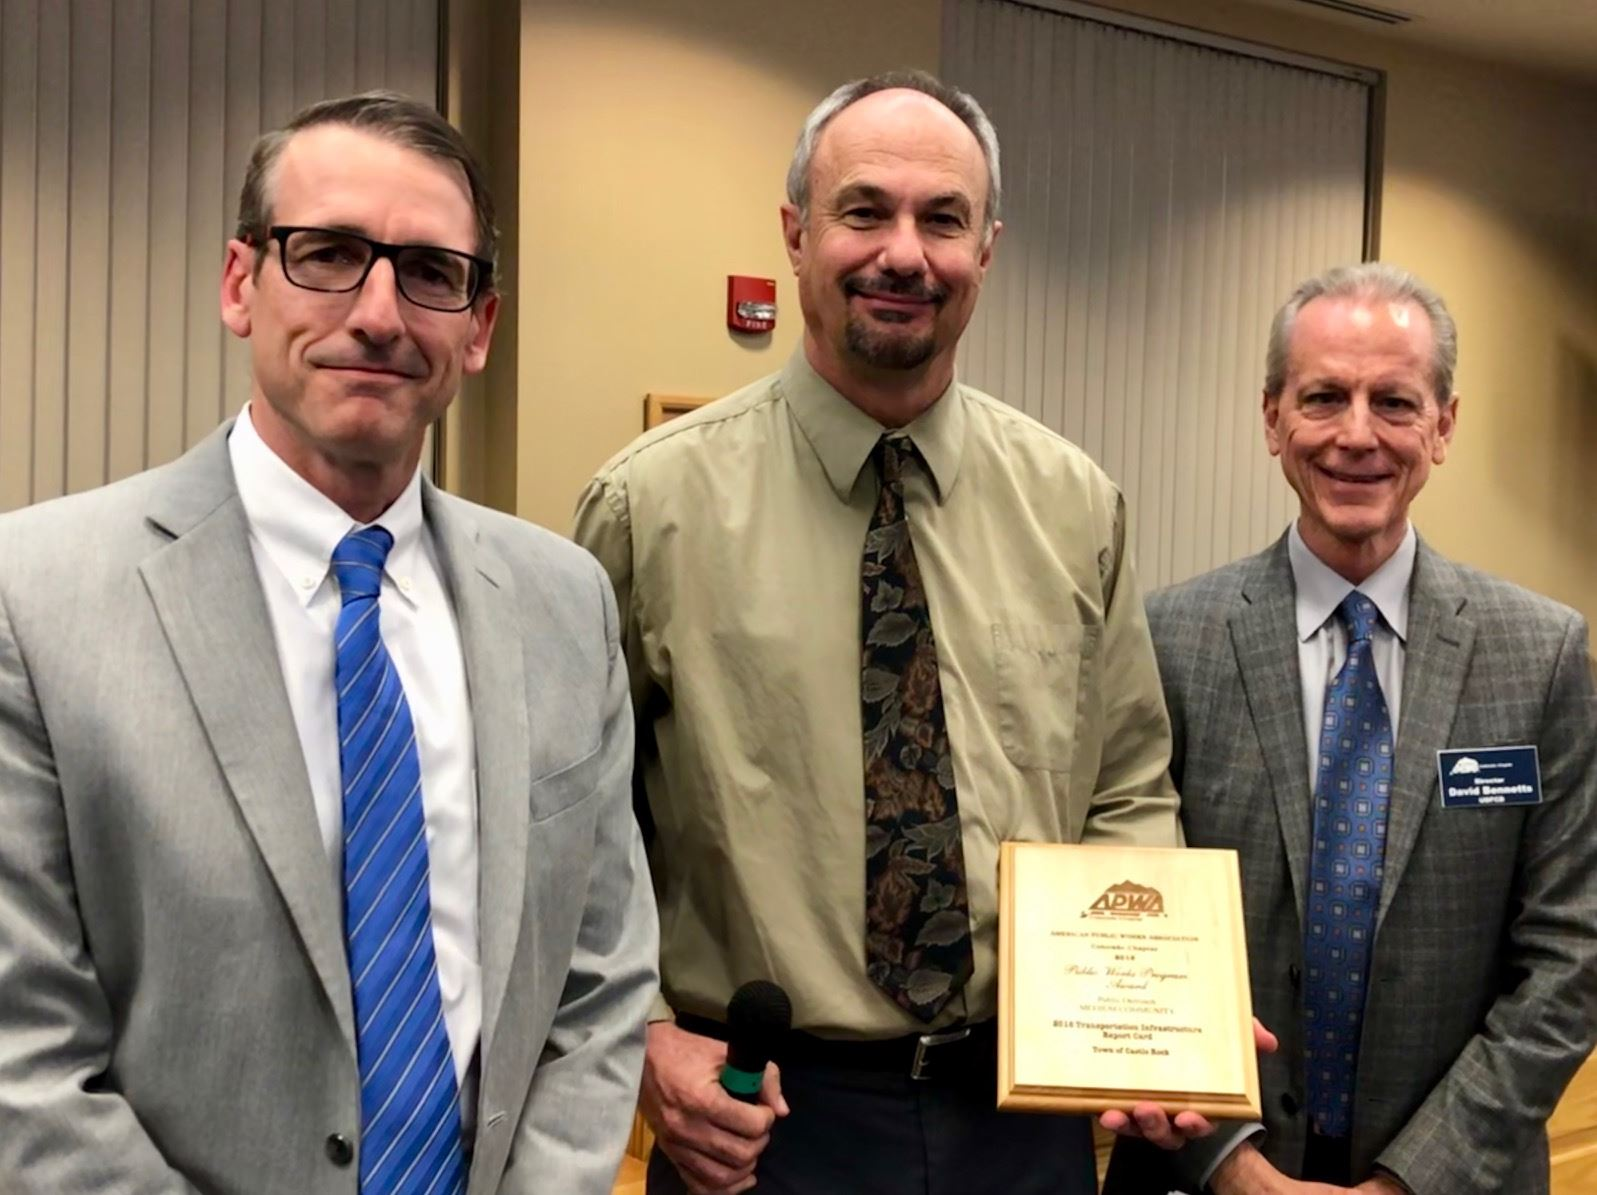 APWA Award presented to Director of Public Works Bob Goebel